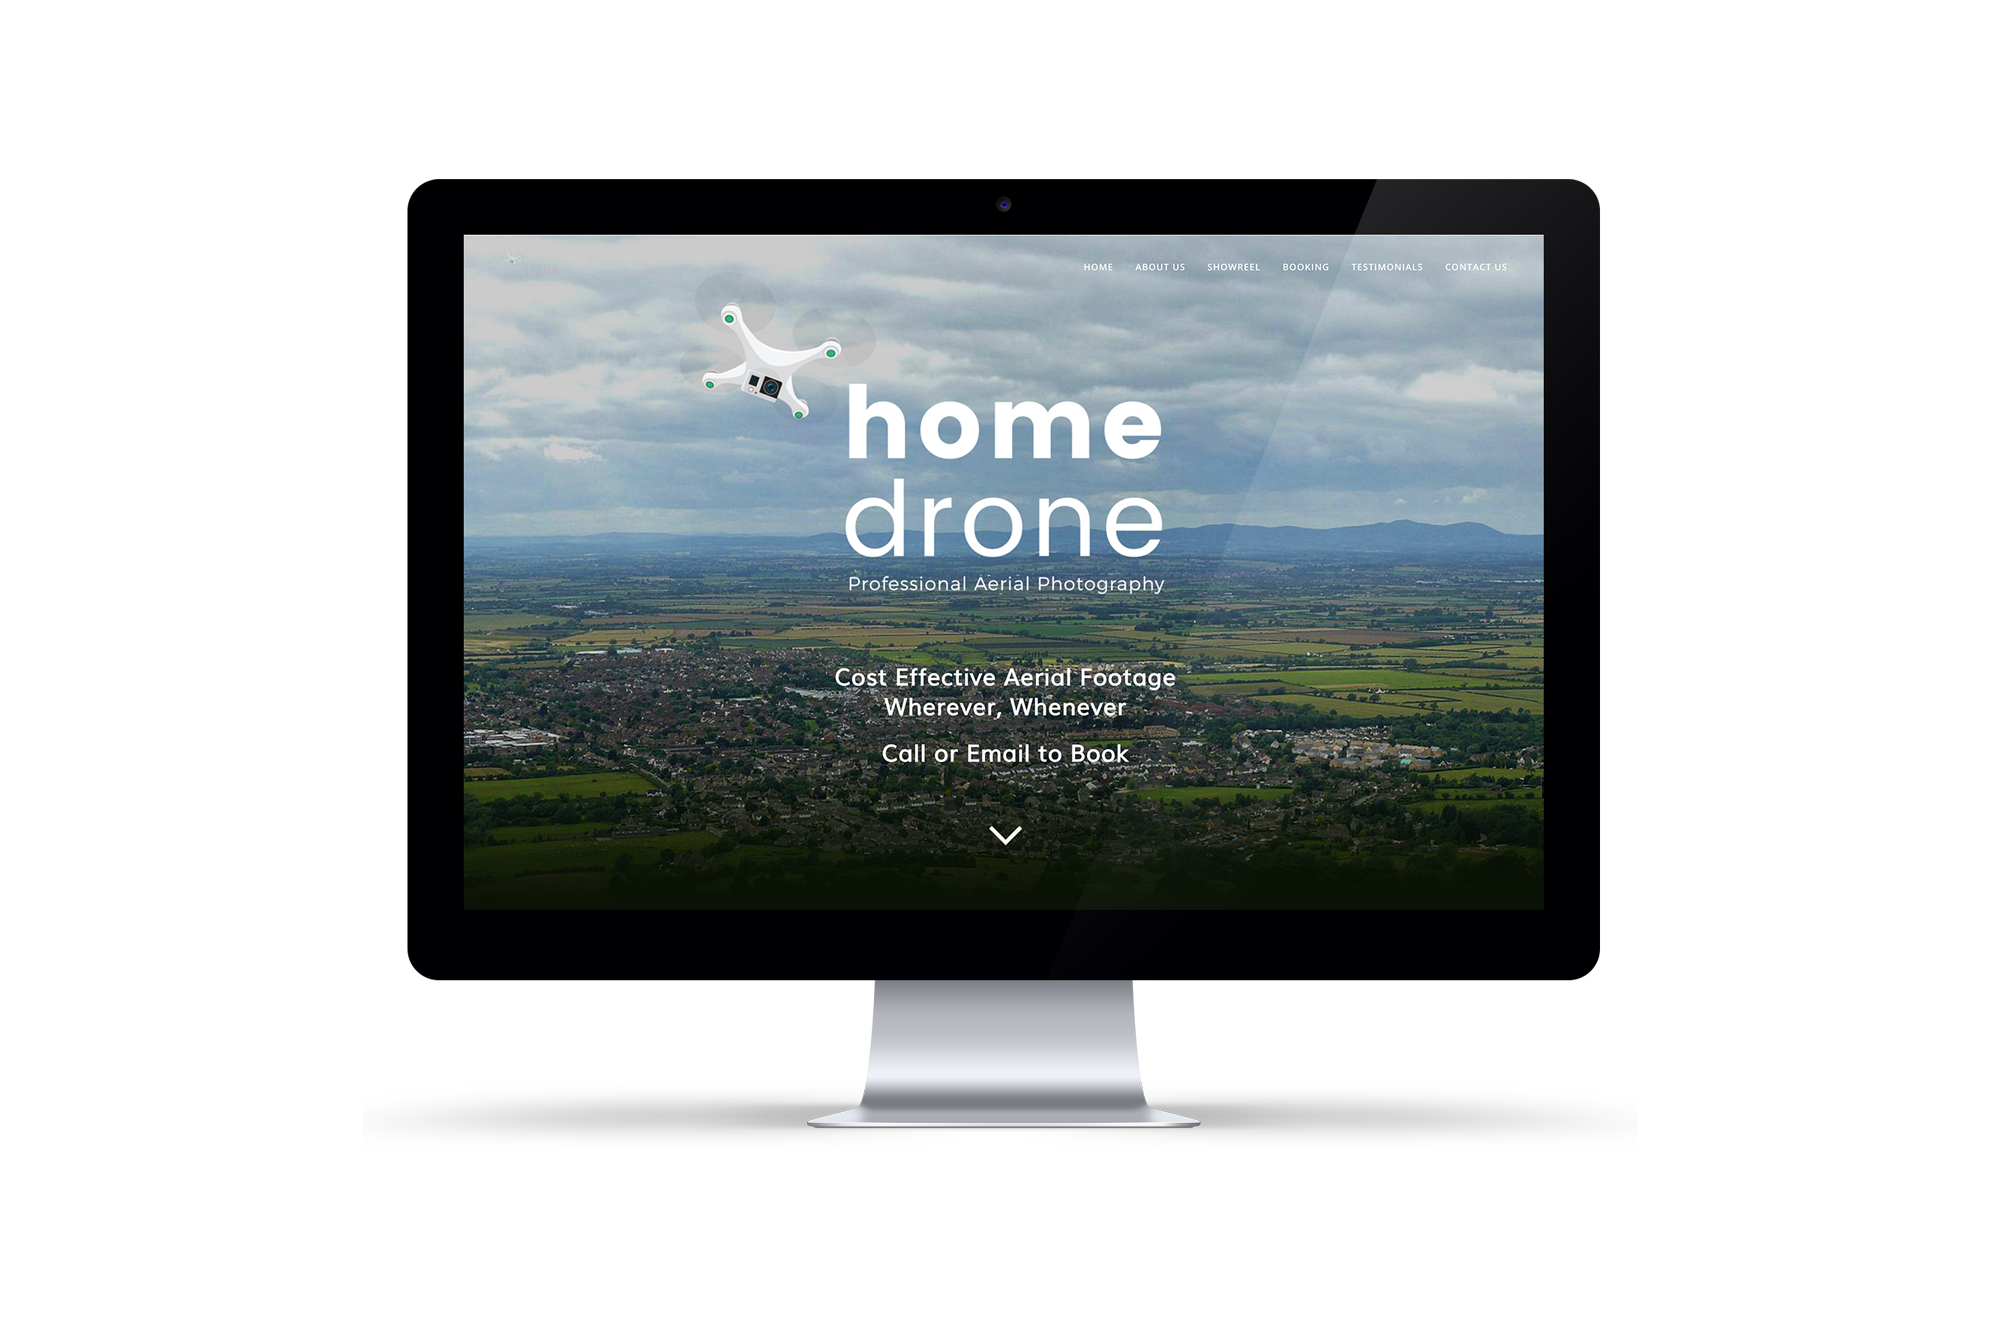 Homedrone Website